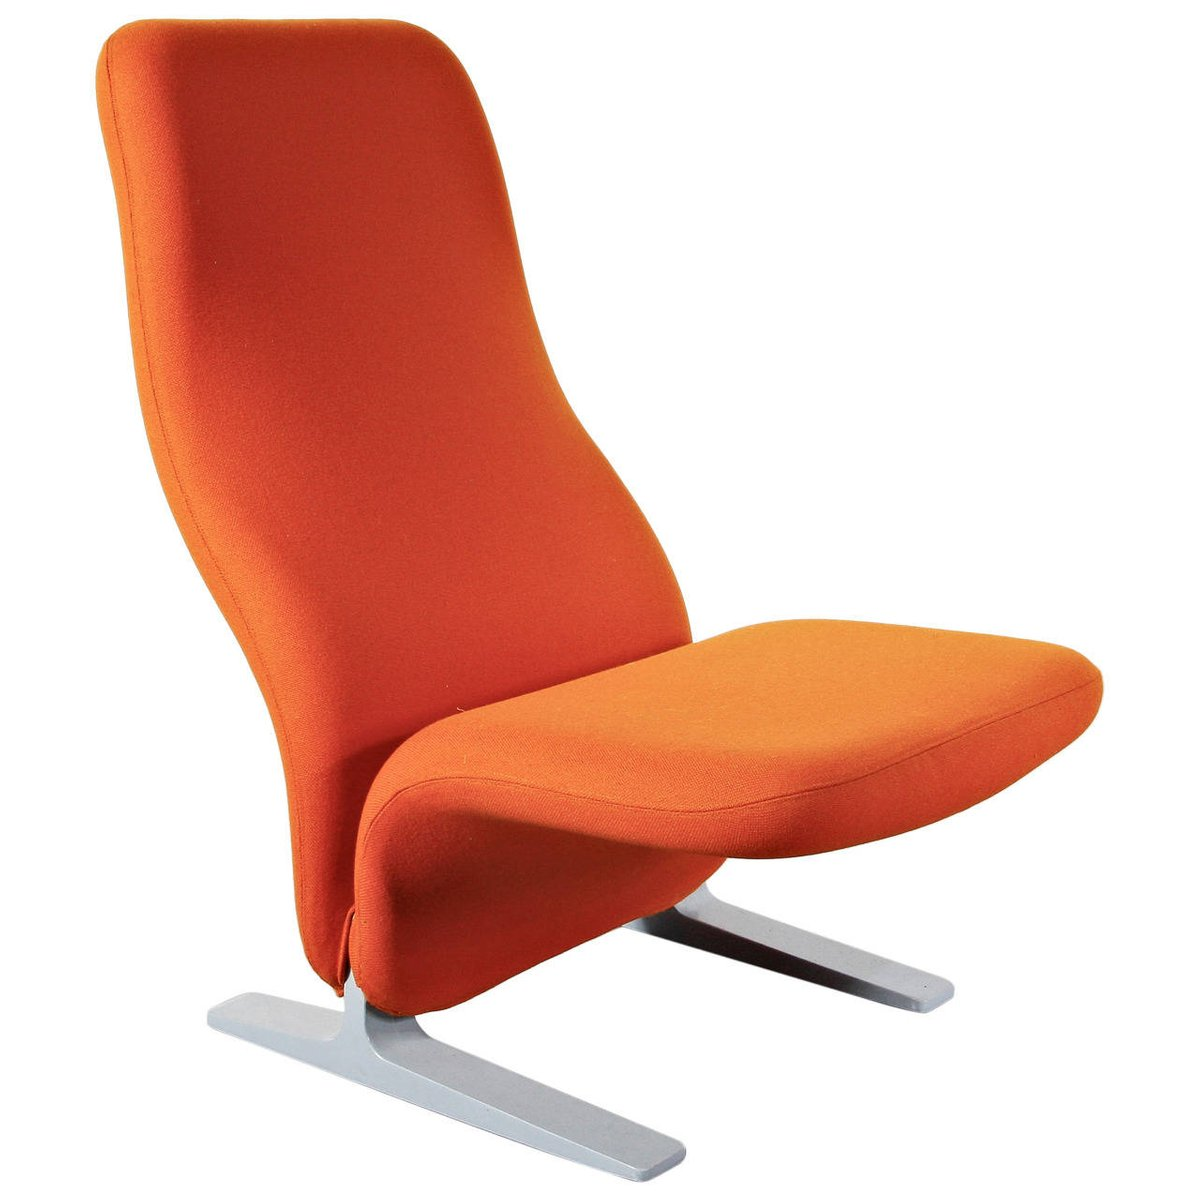 Orange Lounge Chair Orange Concorde Lounge Chair By Pierre Paulin For Artifort